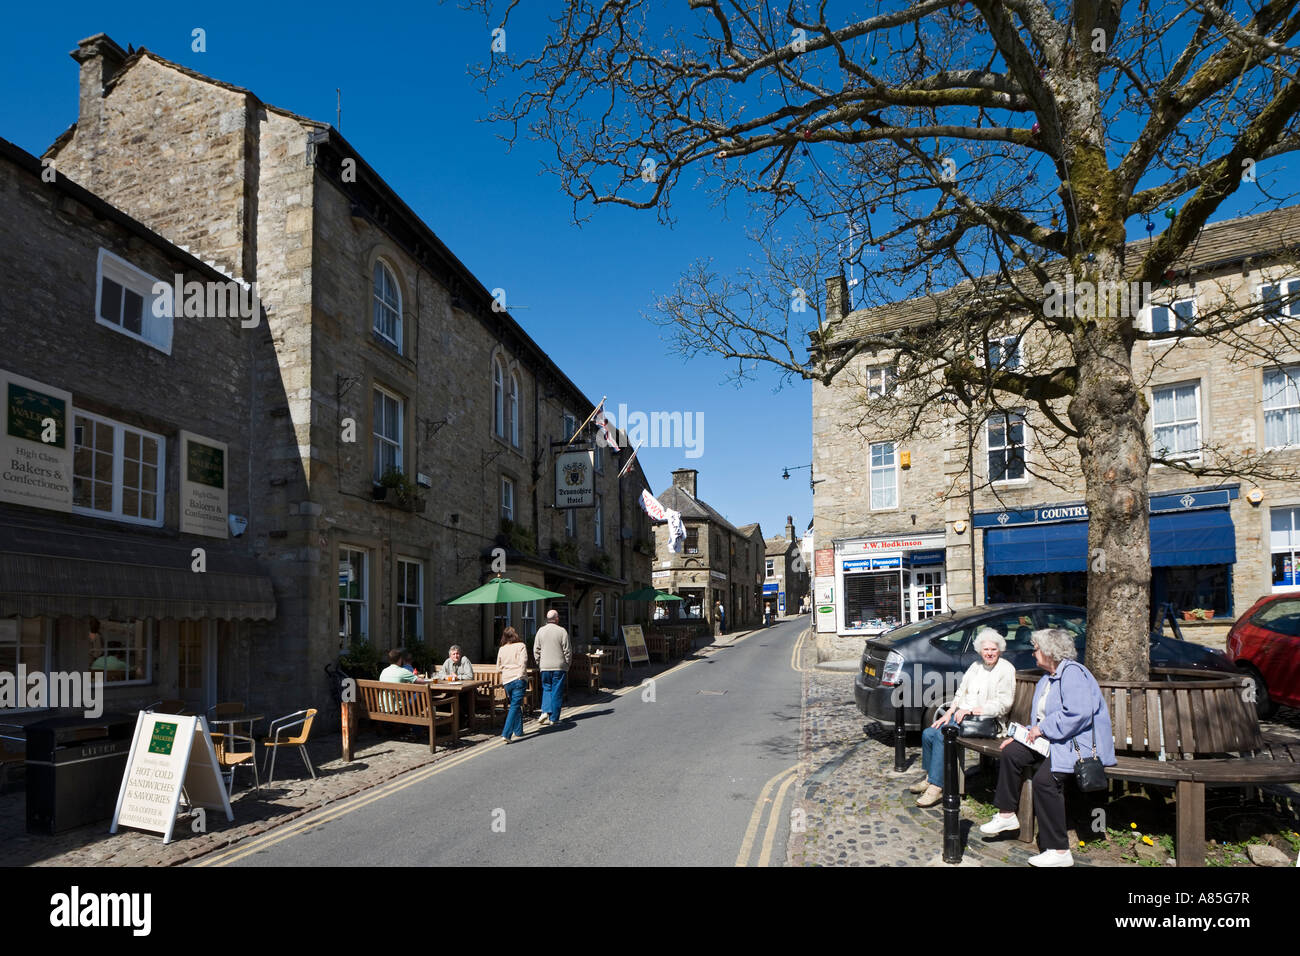 Devonshire Hotel and Pub in the town centre, Grassington, Wharfedale, Yorkshire Dales National Park, North Yorkshire, England Stock Photo